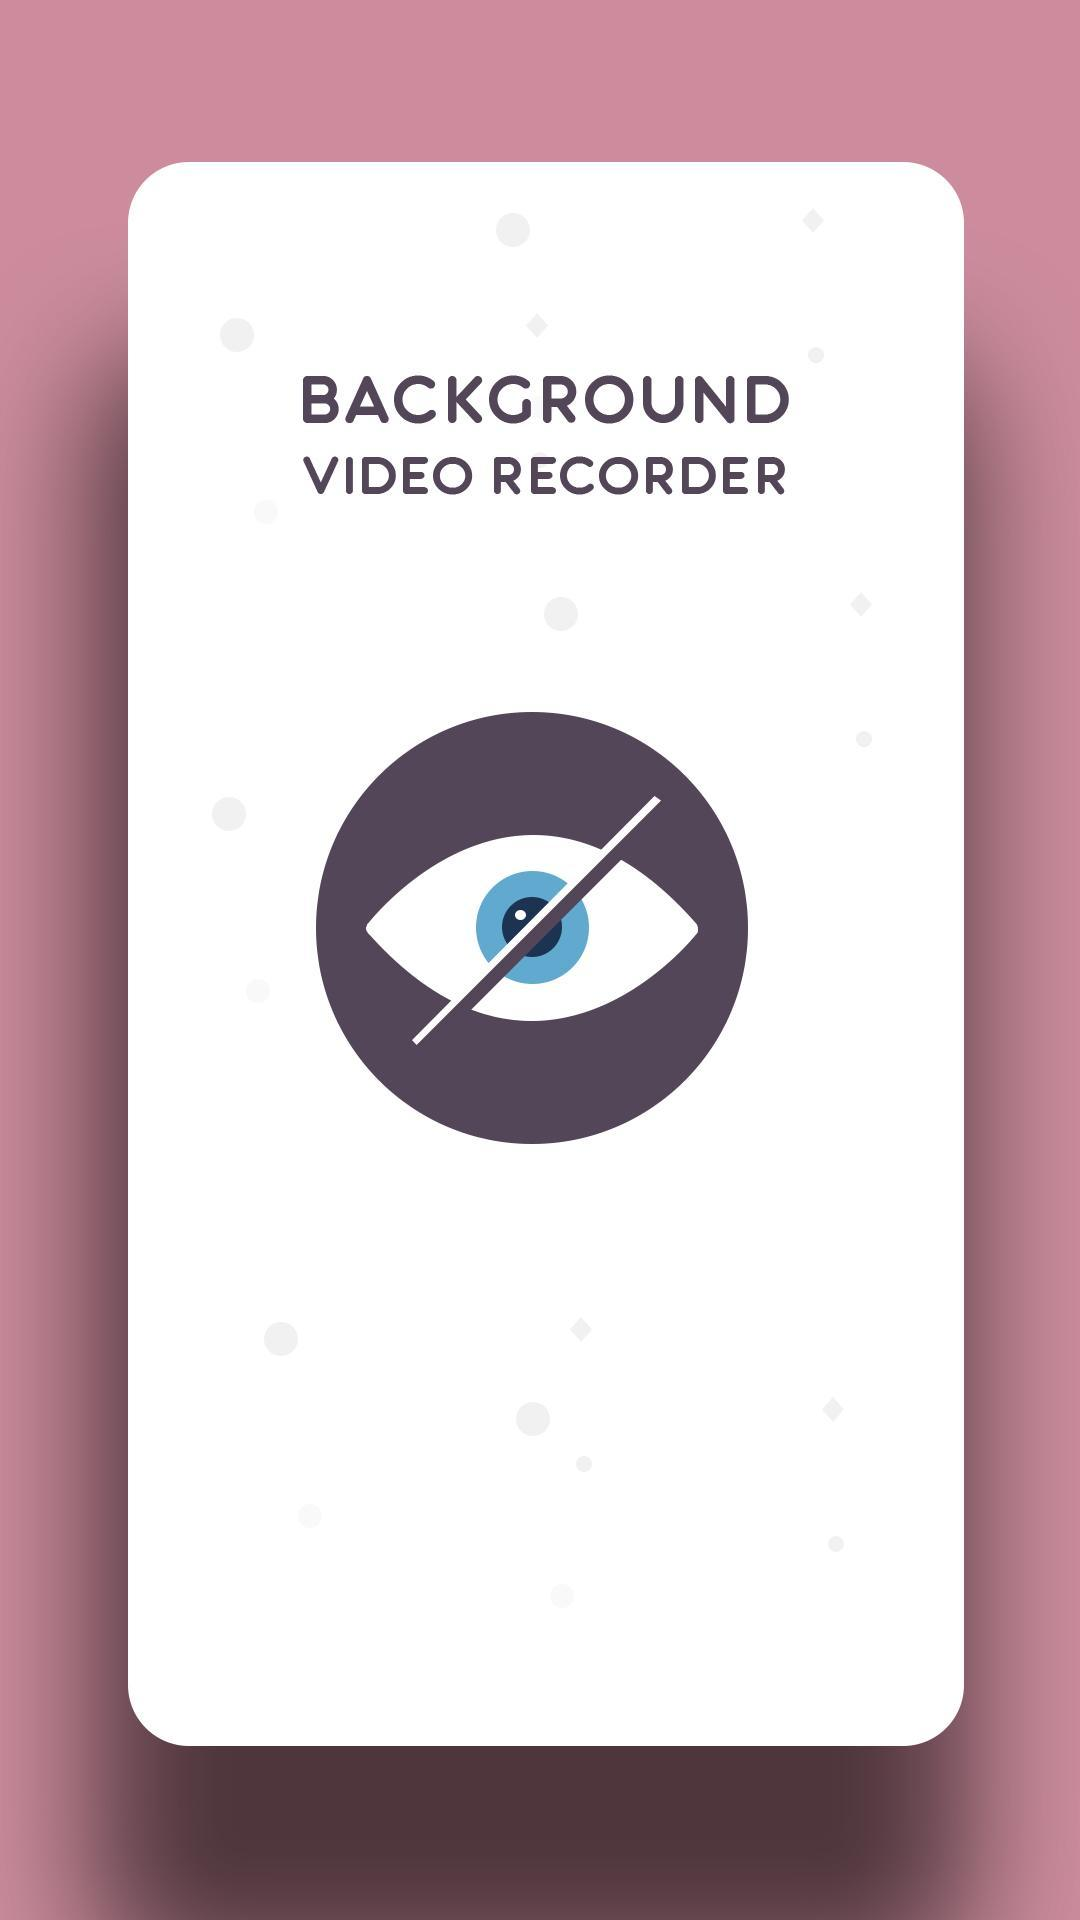 Hidden Video Recorder : Background Video Recorder for Android - APK